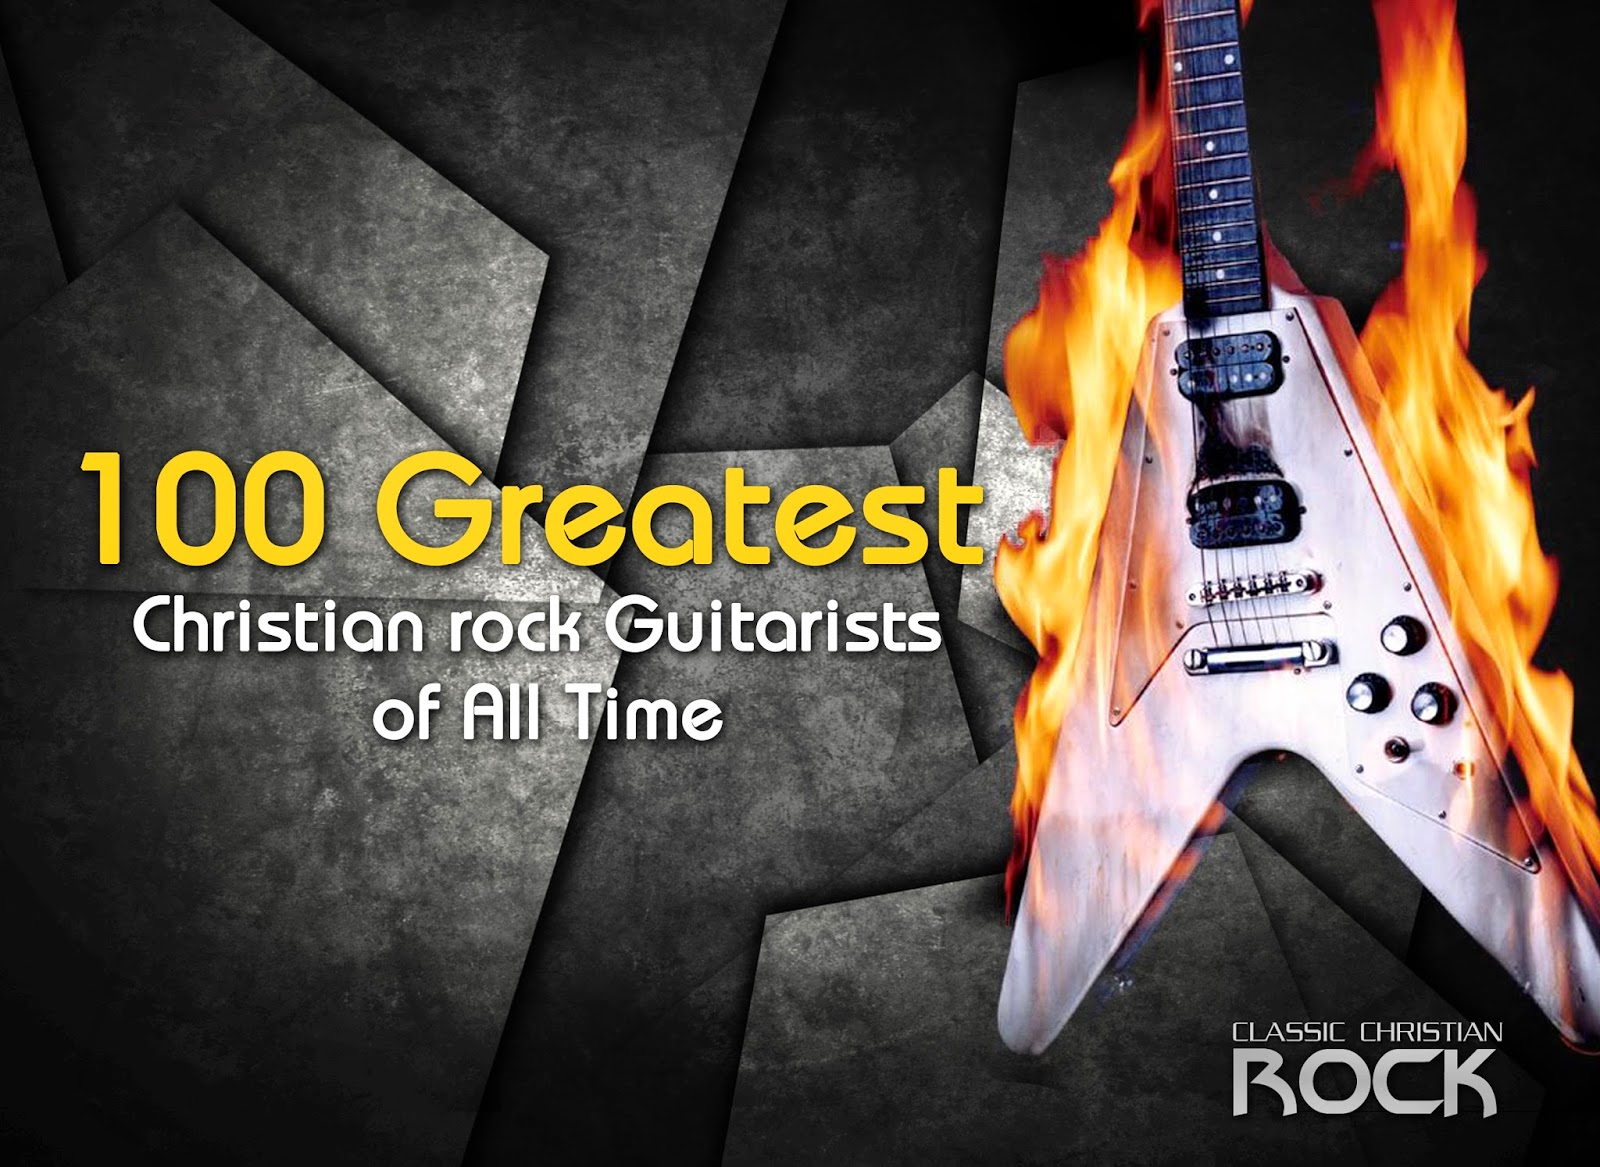 100 Greatest Christian Rock Guitarists of all times